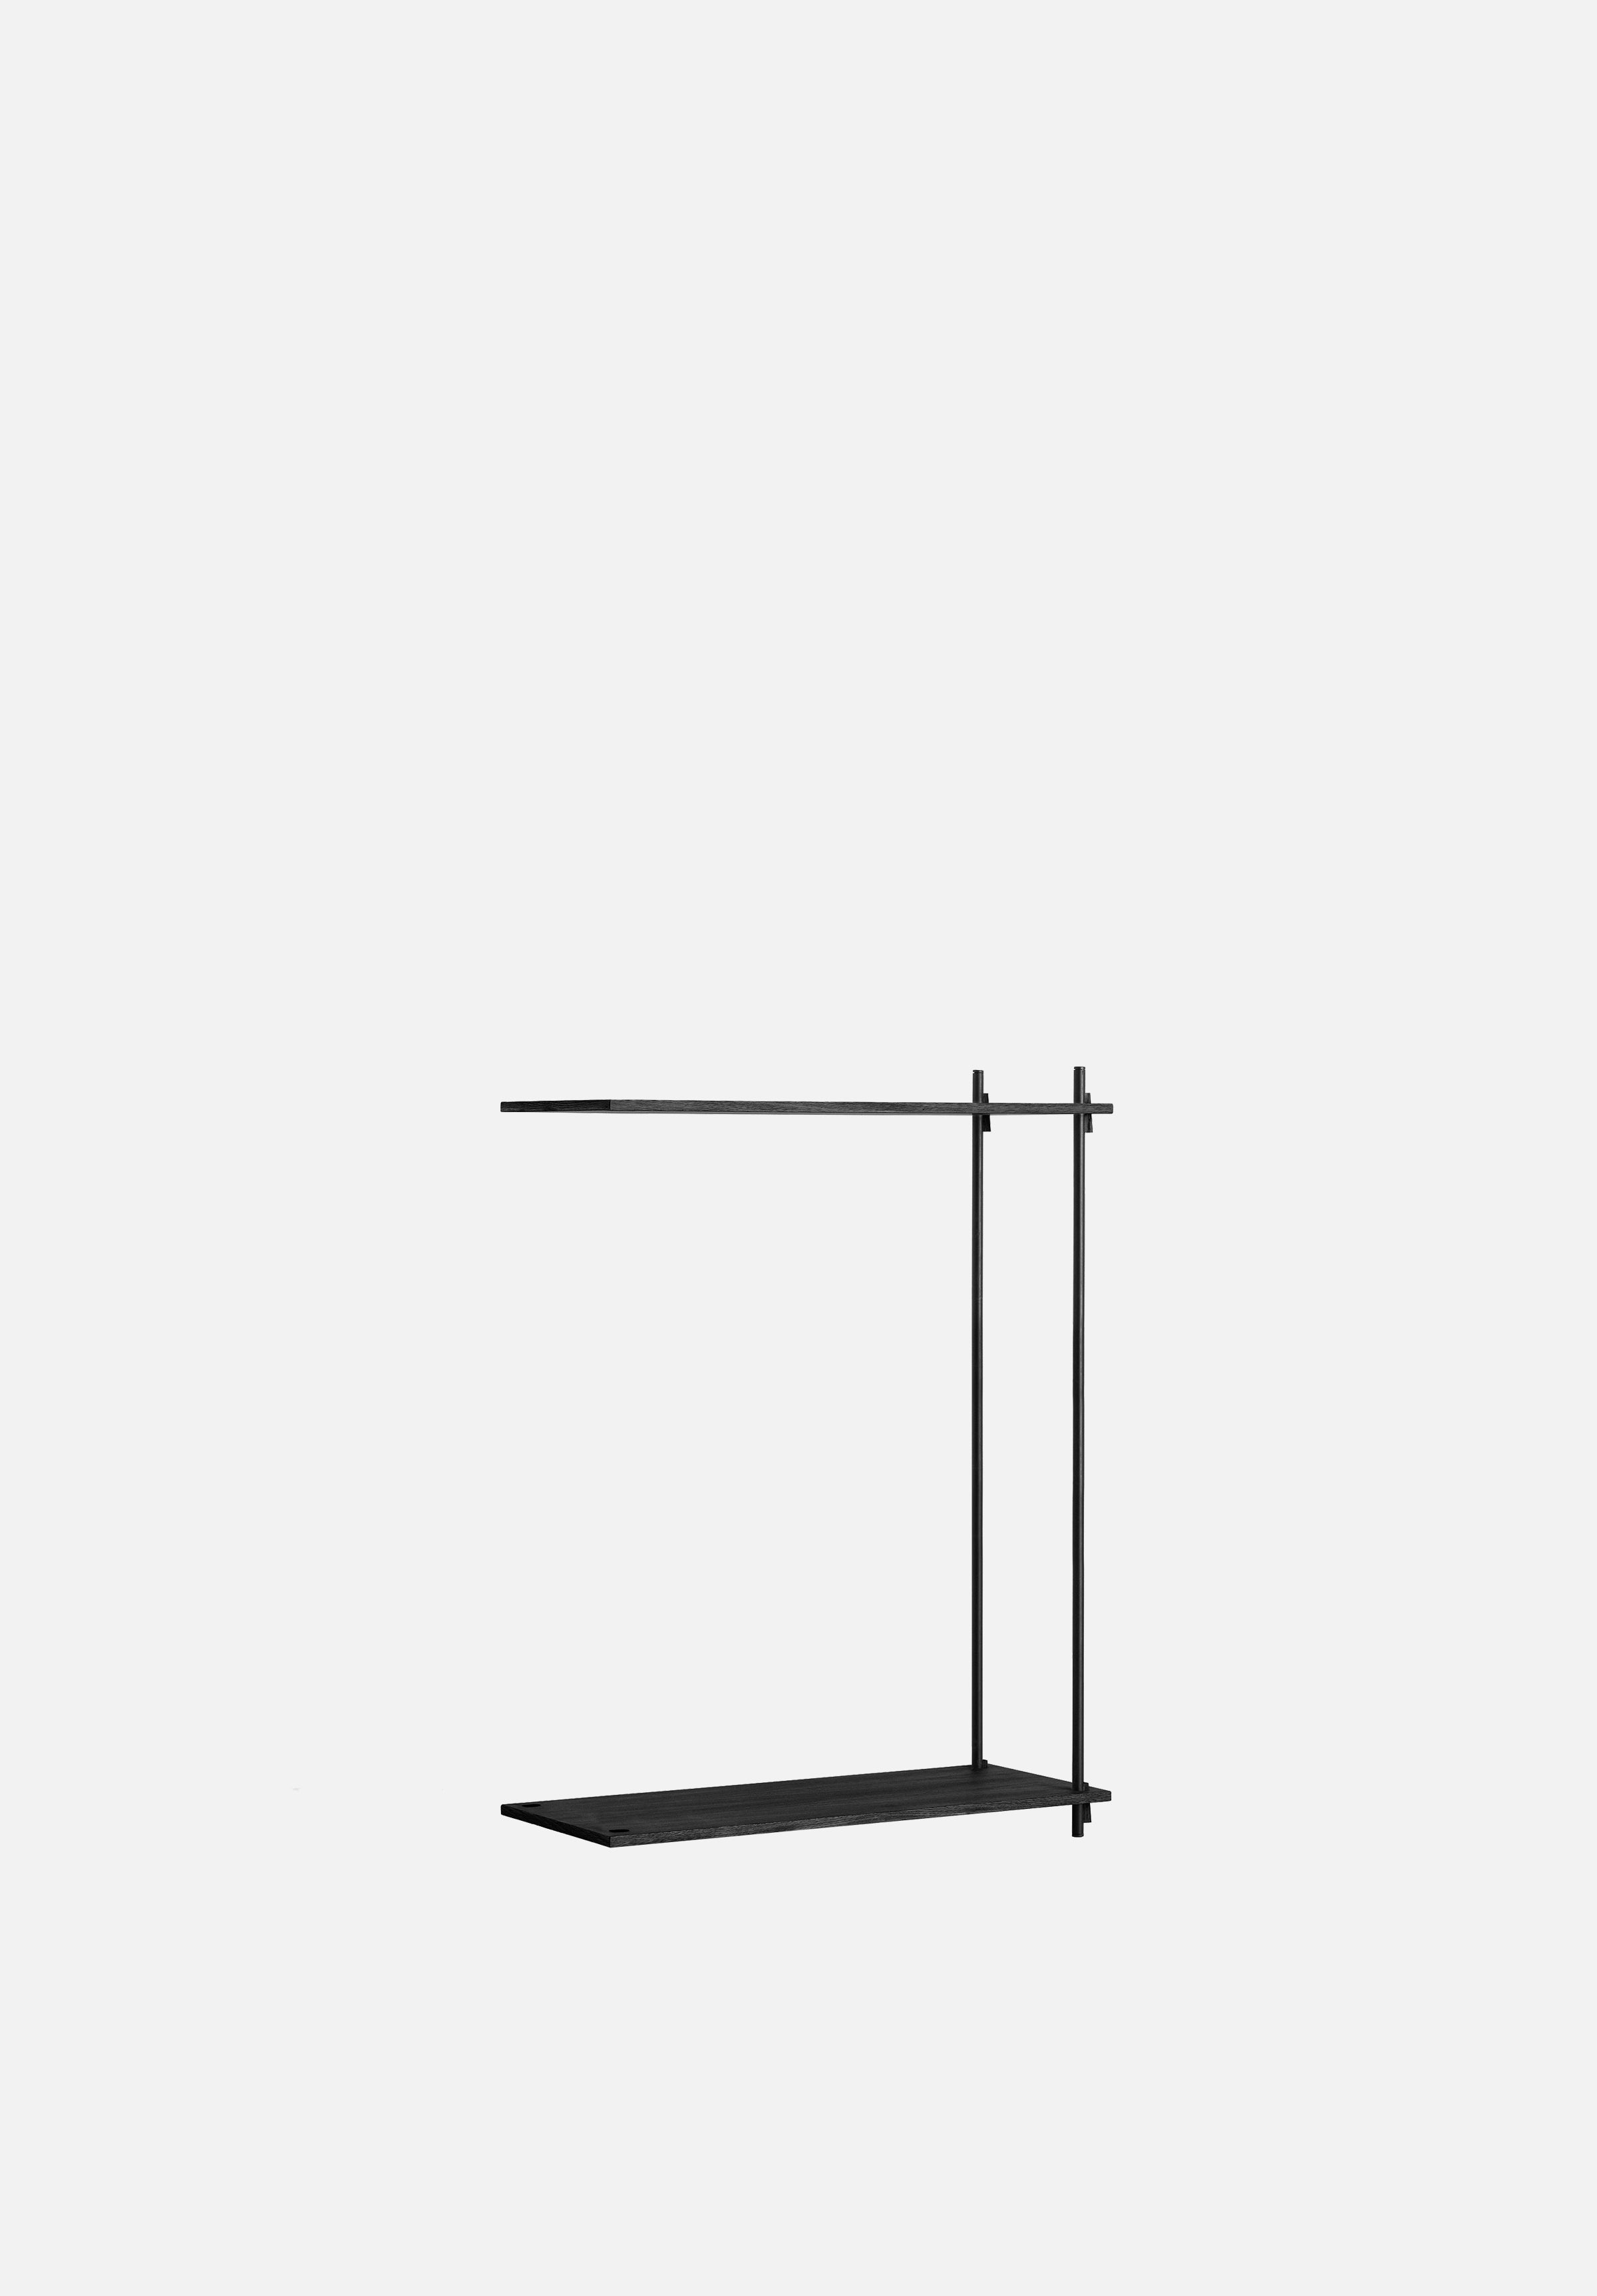 Shelving System — Medium-Moebe-Extension-Black-danish-interior-furniture-denmark-Average-design-toronto-canada